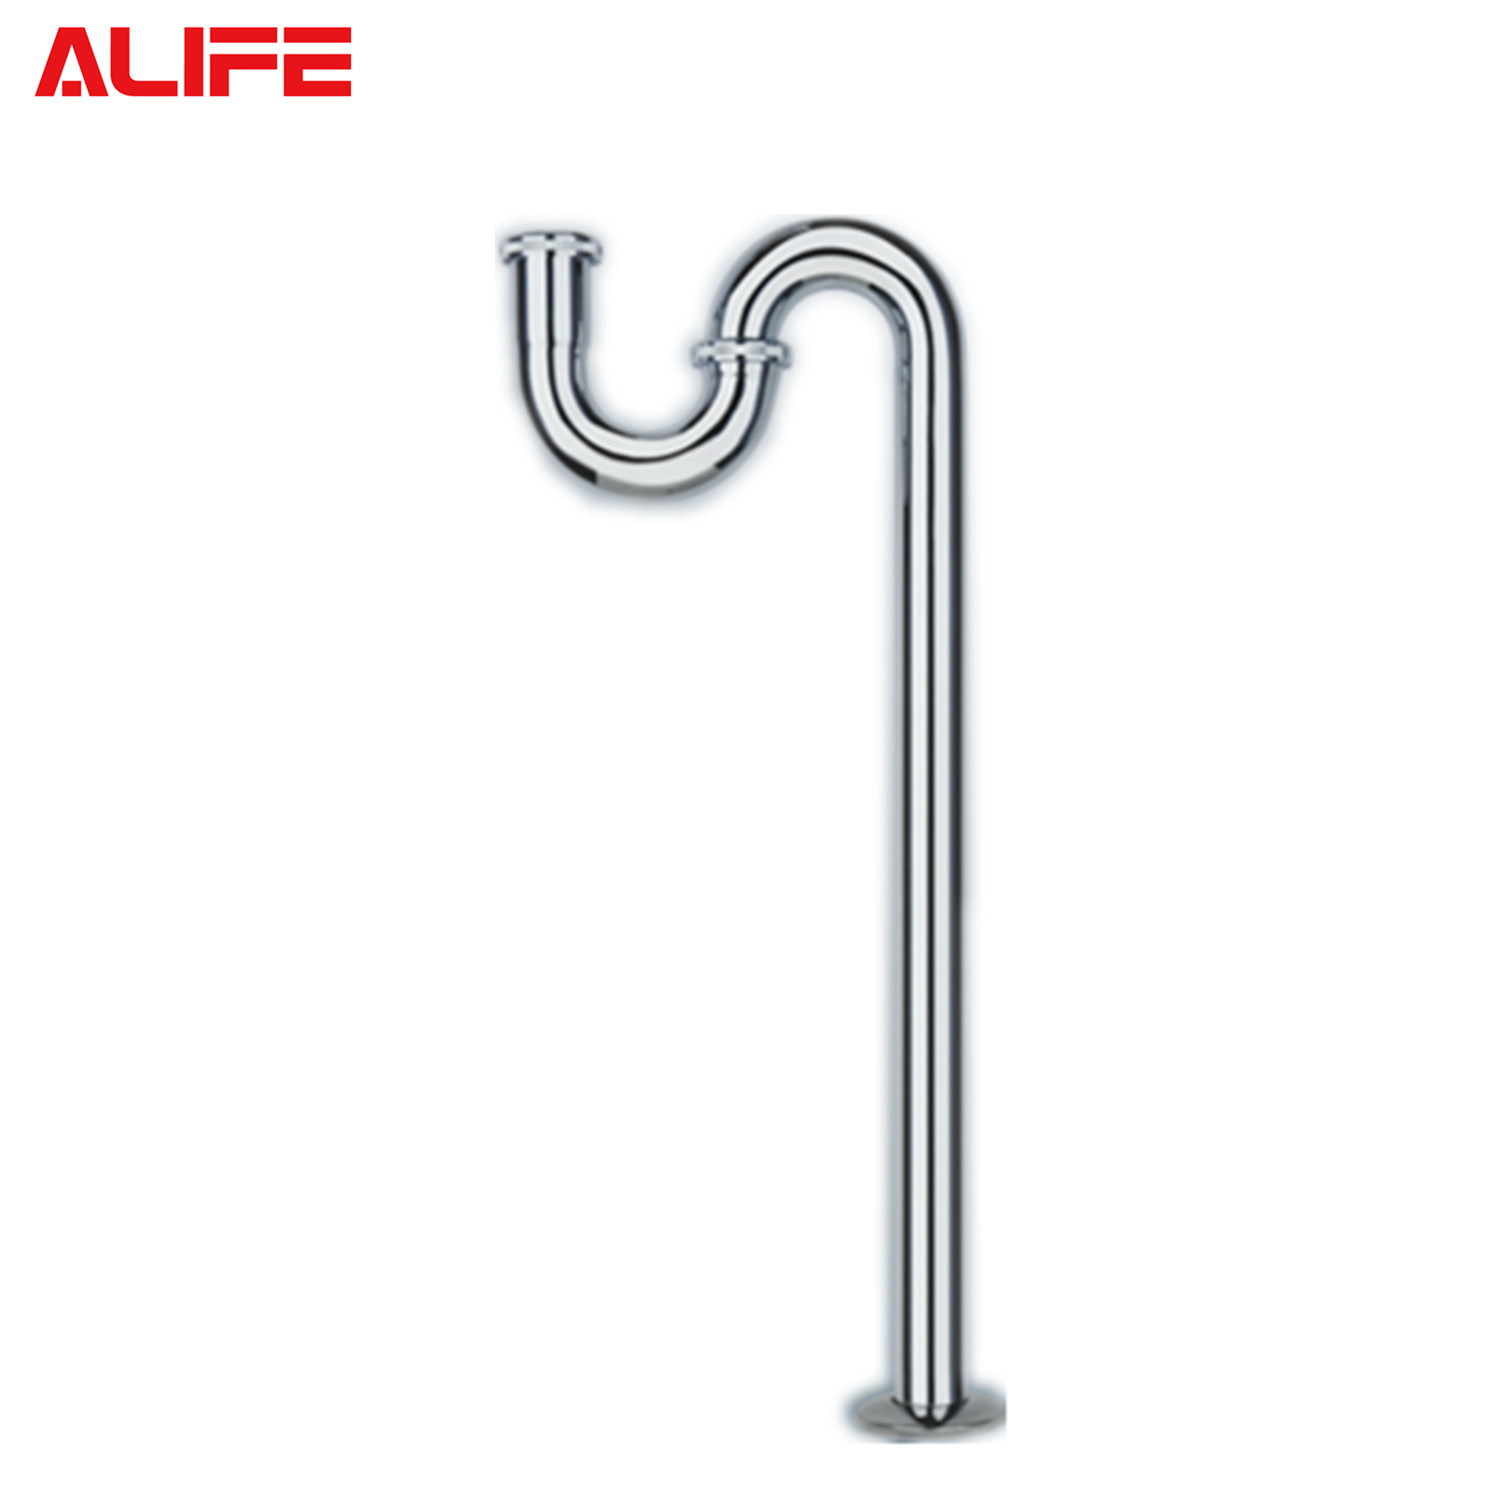 China Bathroom Accessories Plumbing Fitting Brass Wash Basin Siphon S Trap P Trap Sanitary Ware Alxs0044 China Basin Waste Bottle Trap Drainer Waste